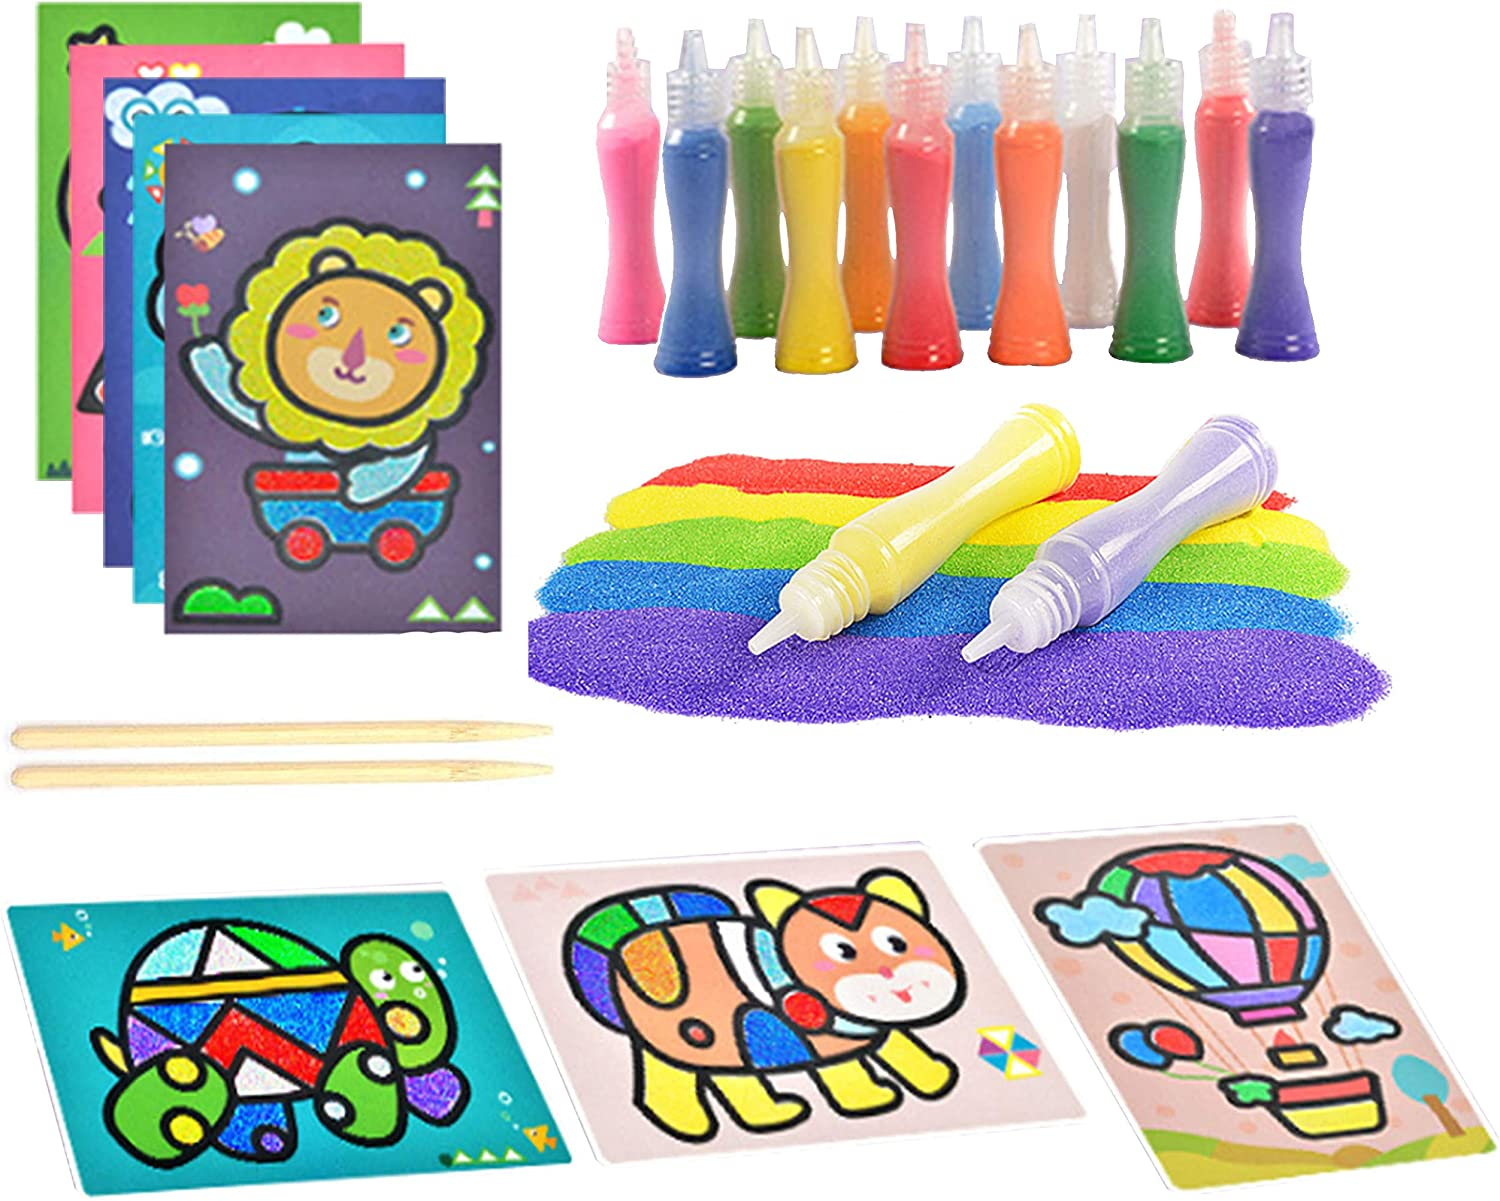 Yesier 12 Colored Sand Art Kit Scenic Sand with 24 Sheets Sand Art Painting Cards and 2Pcs Scratch Sticks for Kids Arts and Crafts